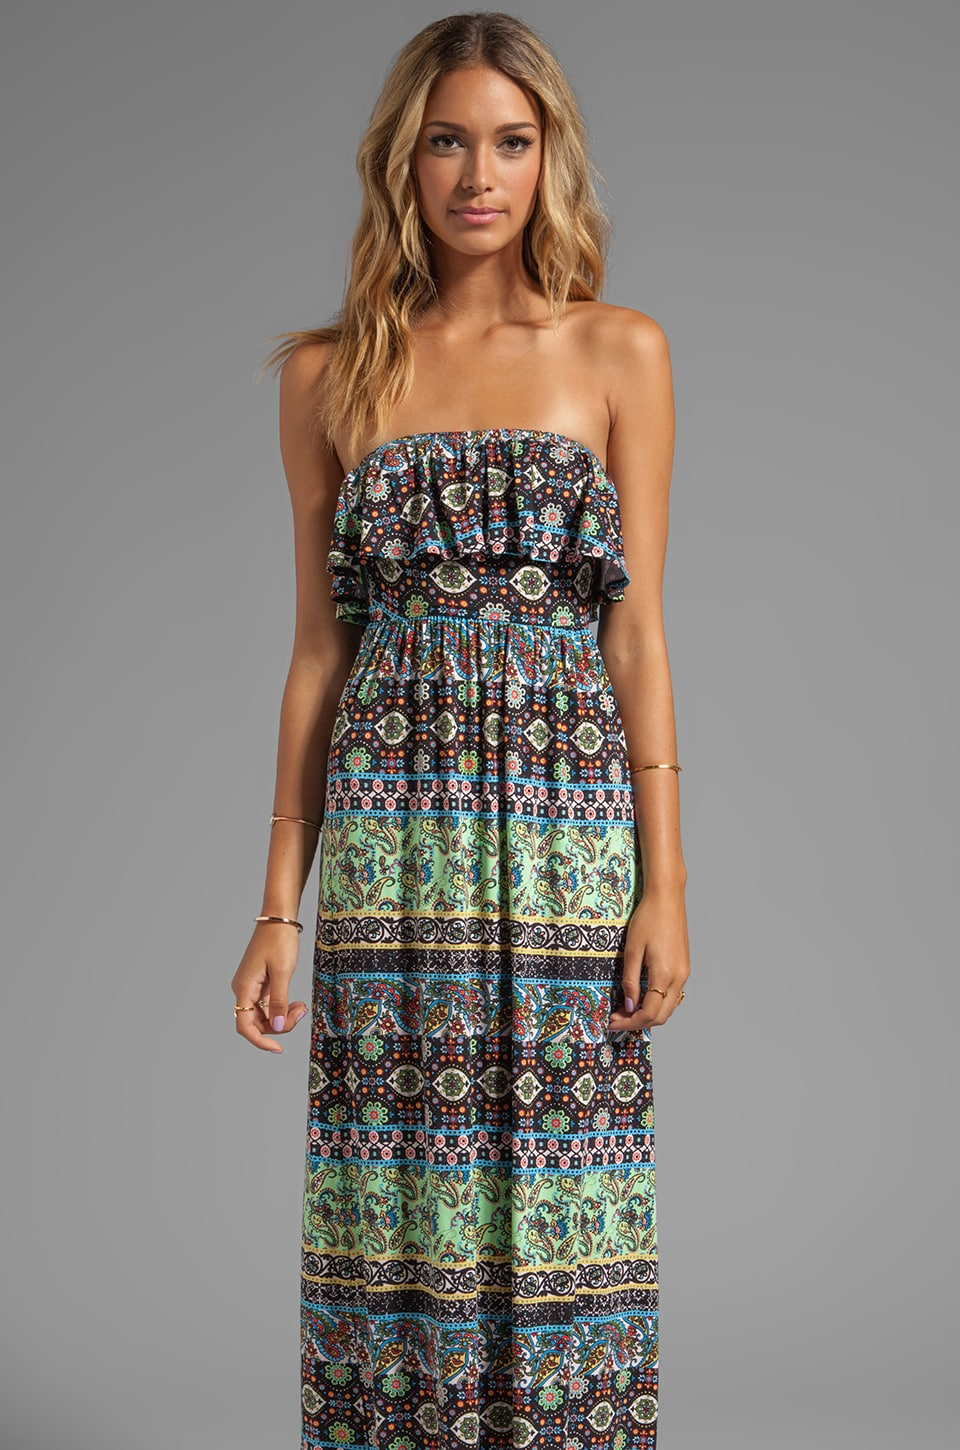 VOOM by Joy Han Eliza Long Dress in Multi